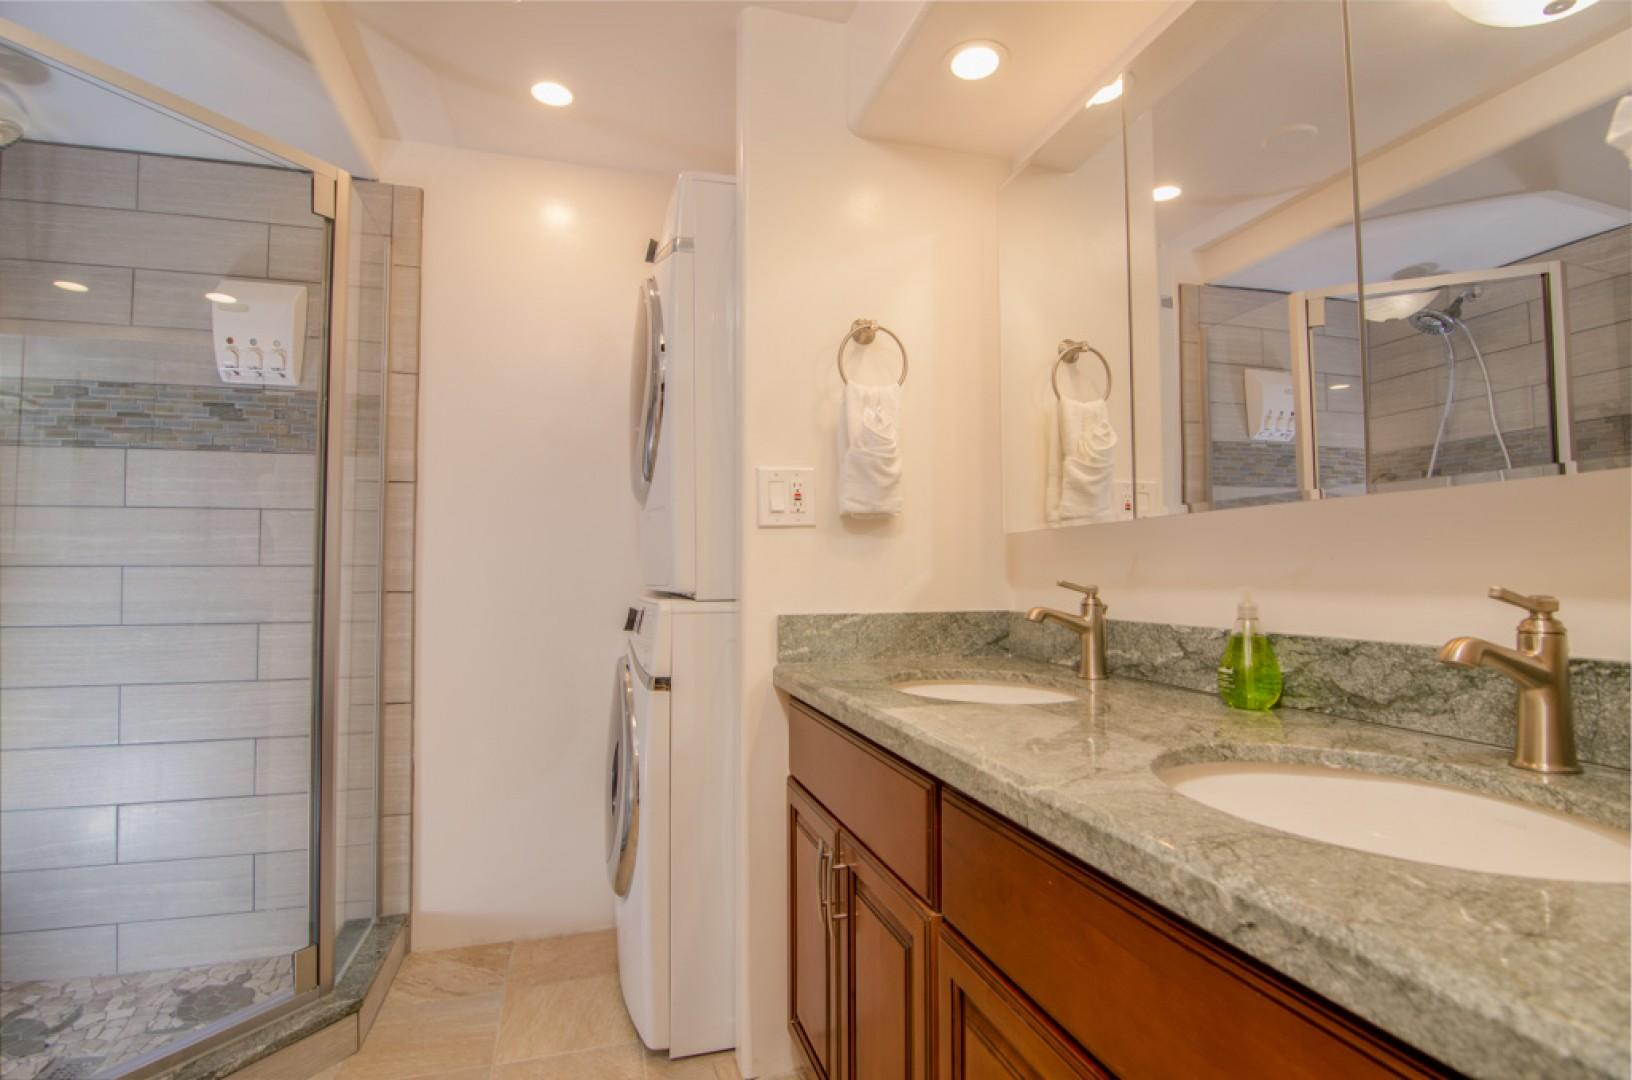 Lovely guest bathroom with large washer and dryer.